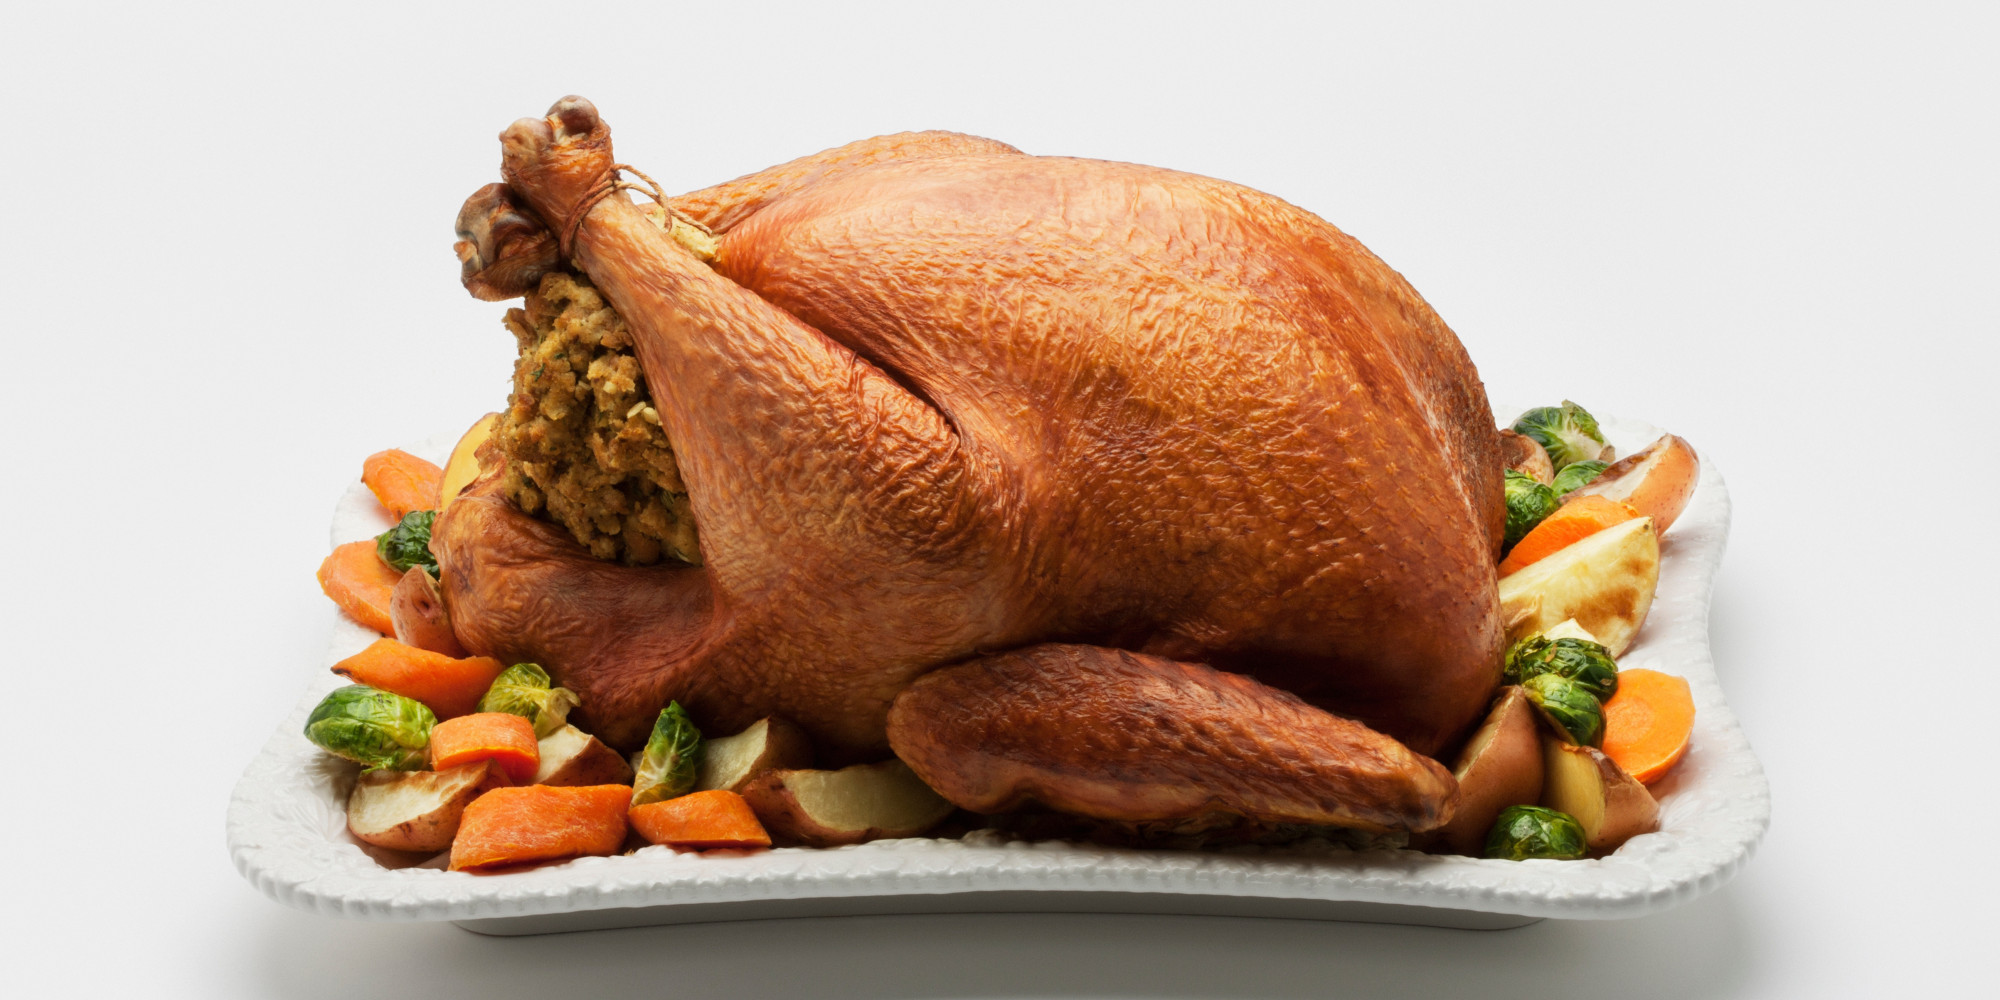 Tryptophan Making You Sleepy Is A Big Fat Lie